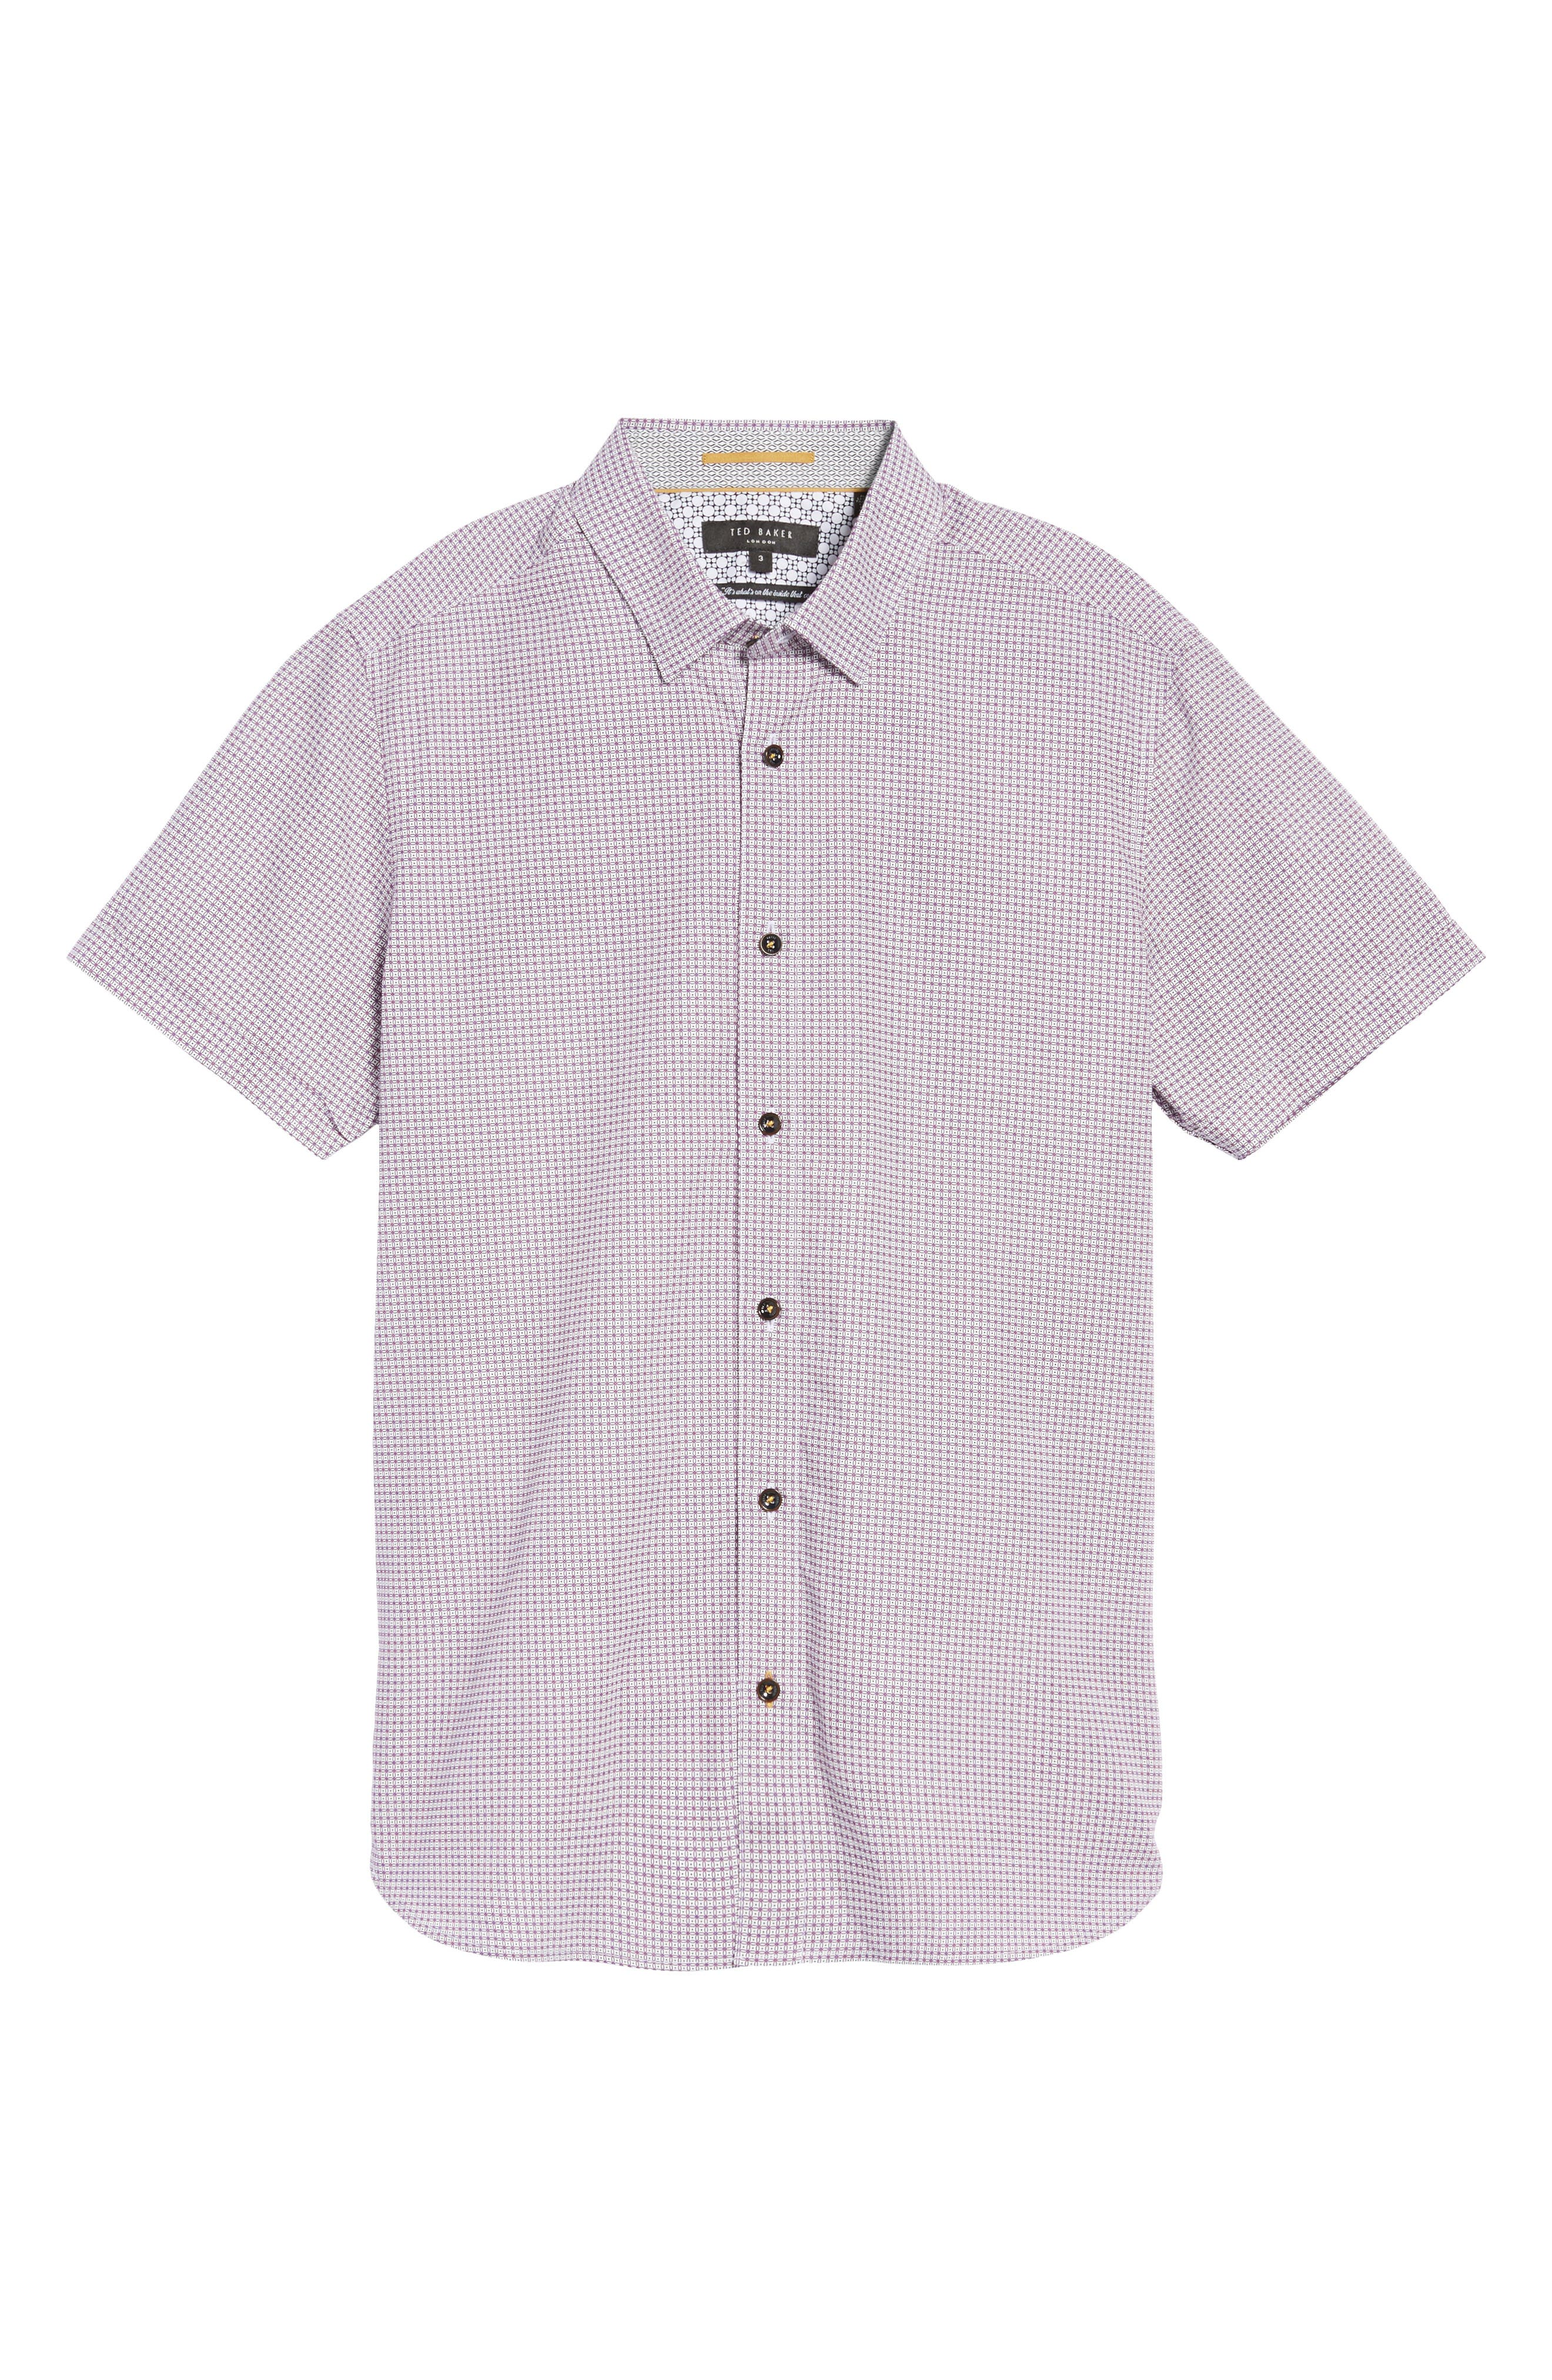 Tennent Trim Fit Microprint Woven Shirt,                             Alternate thumbnail 6, color,